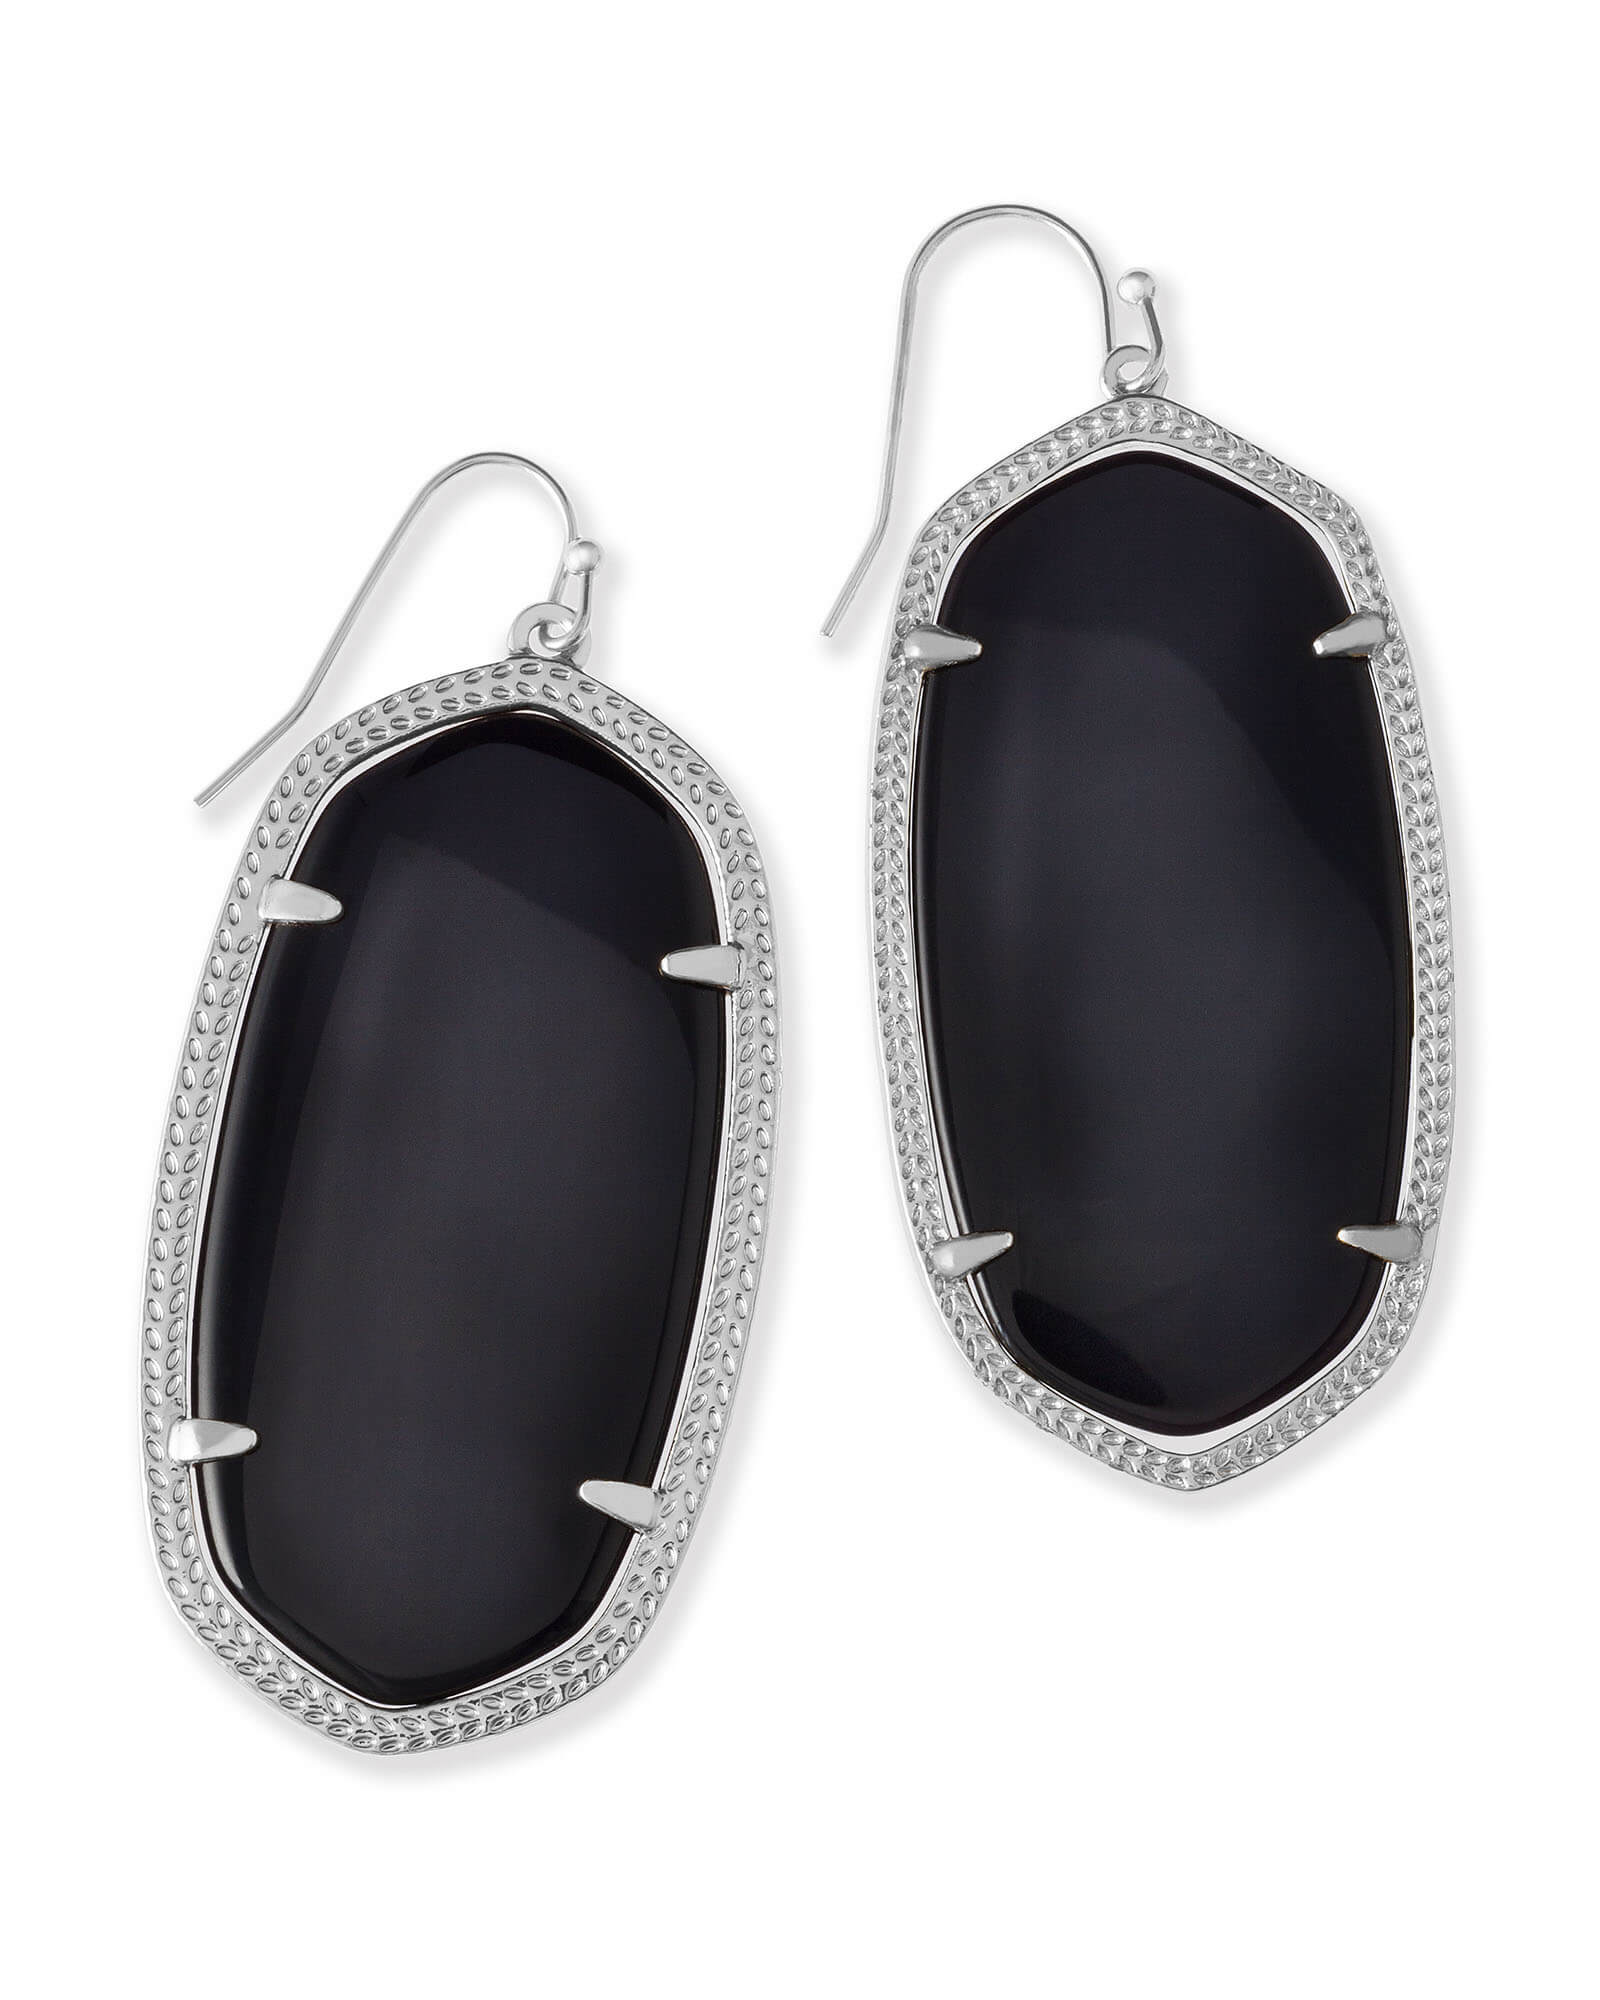 Danielle Silver Earrings in Black